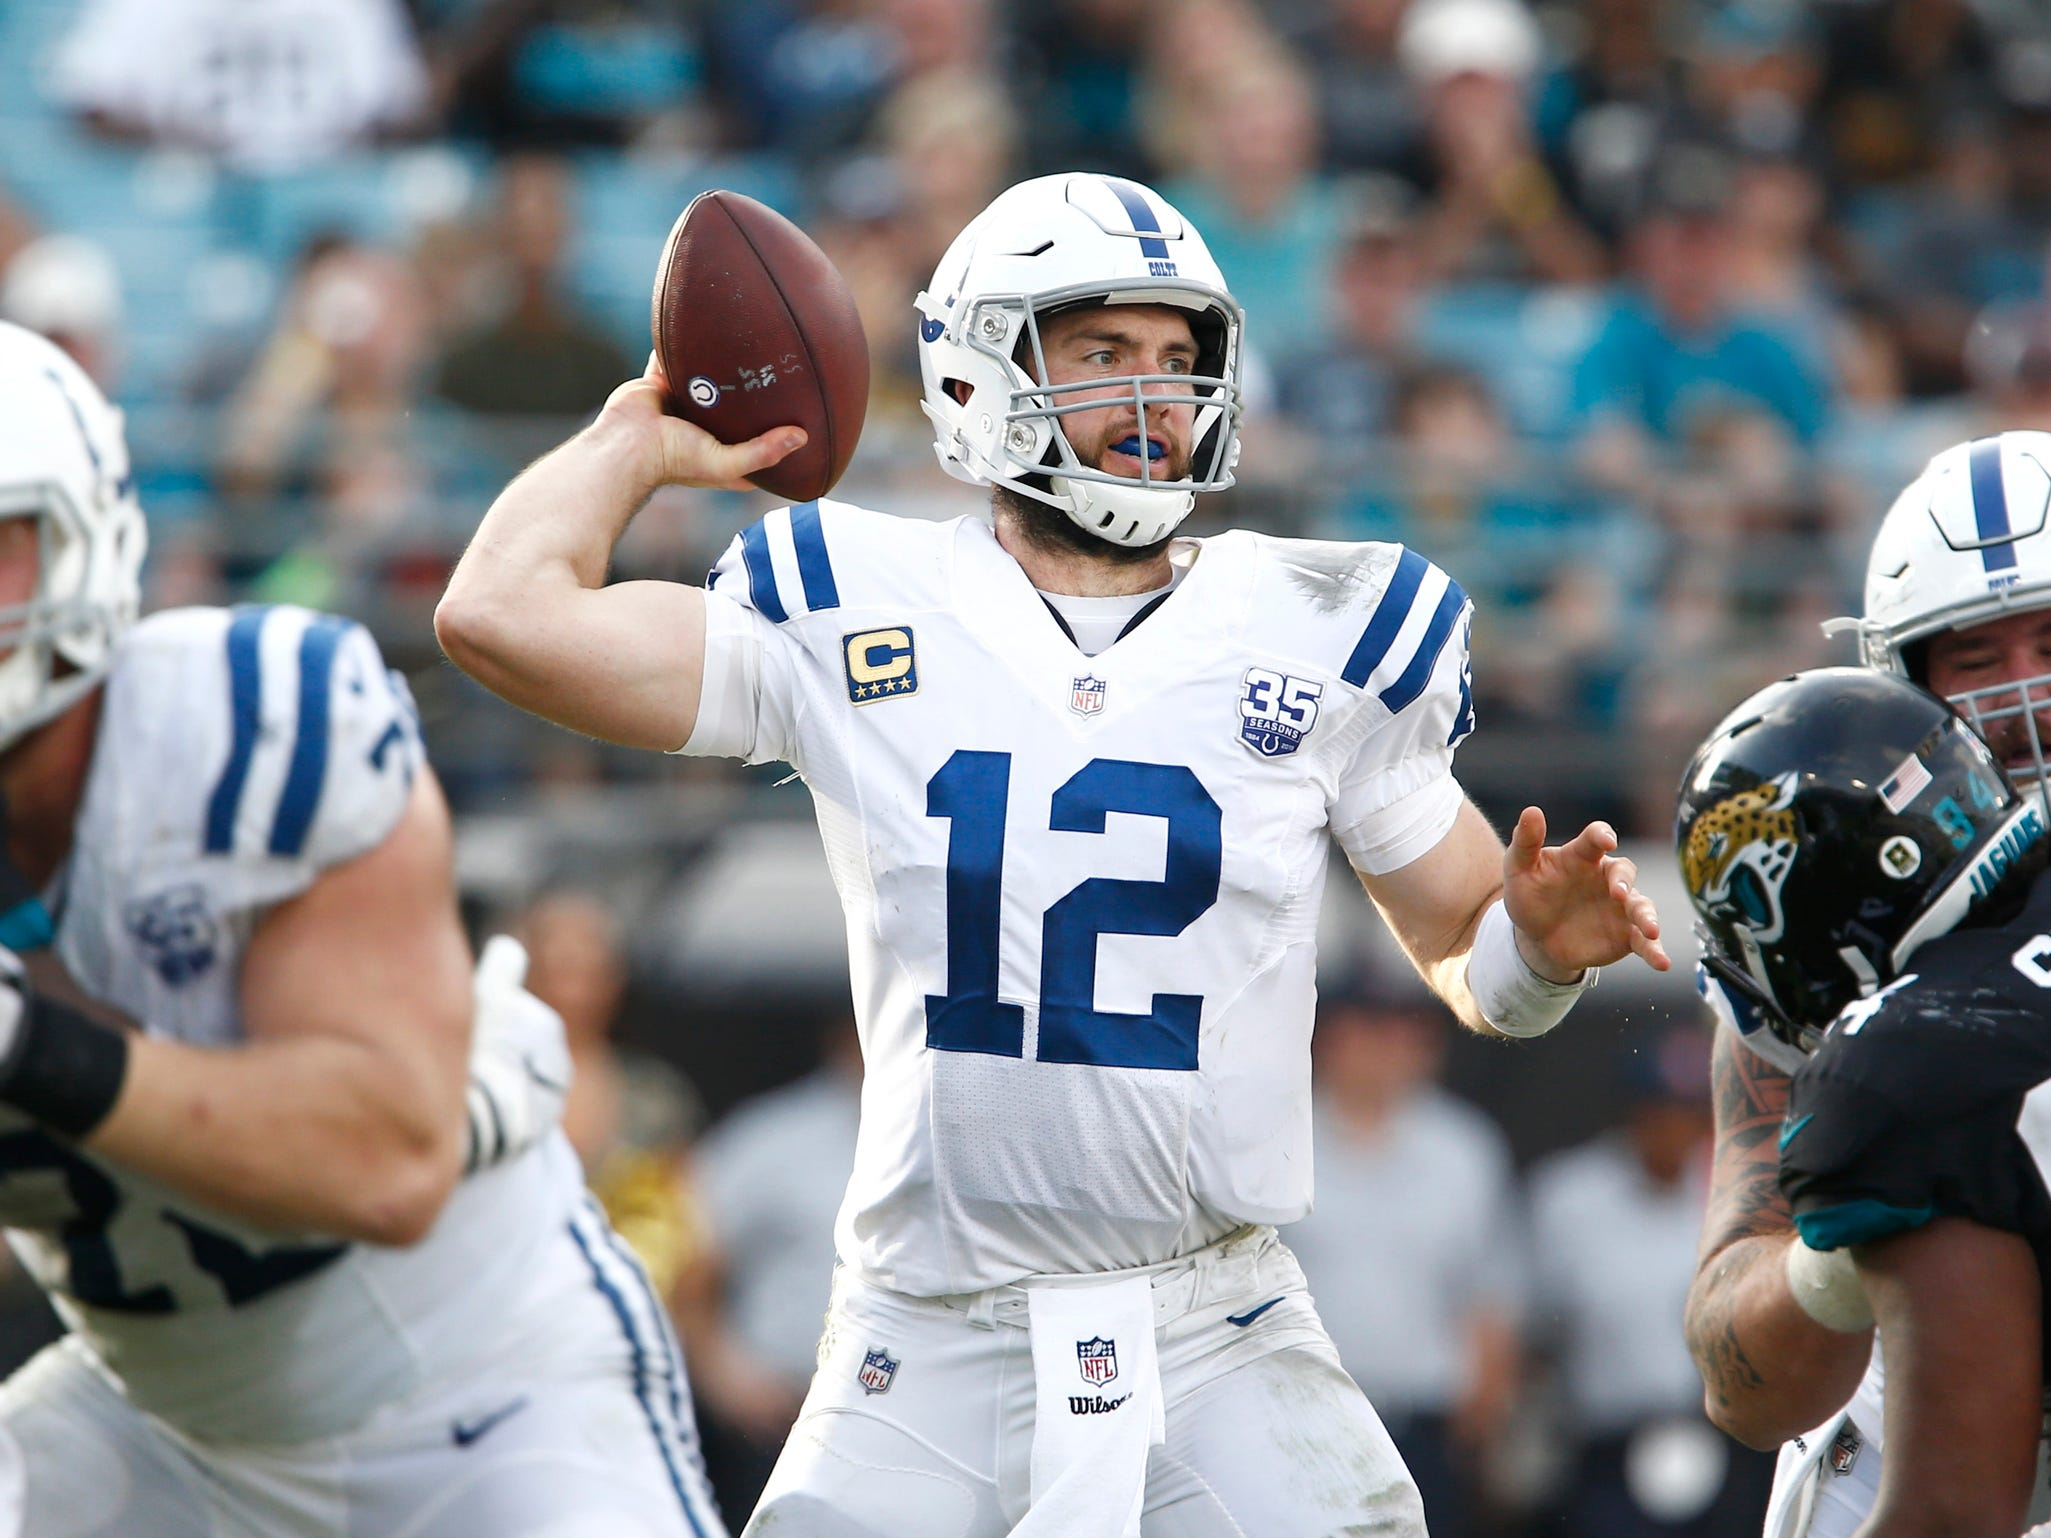 17. Colts (6-6) | Last game: Lost to the Jaguars, 6-0 | Previous ranking: 13 | The buzz: After Josh McDaniels bailed on him, Matt Eberflus has done a great job as Colts defensive coordinator.